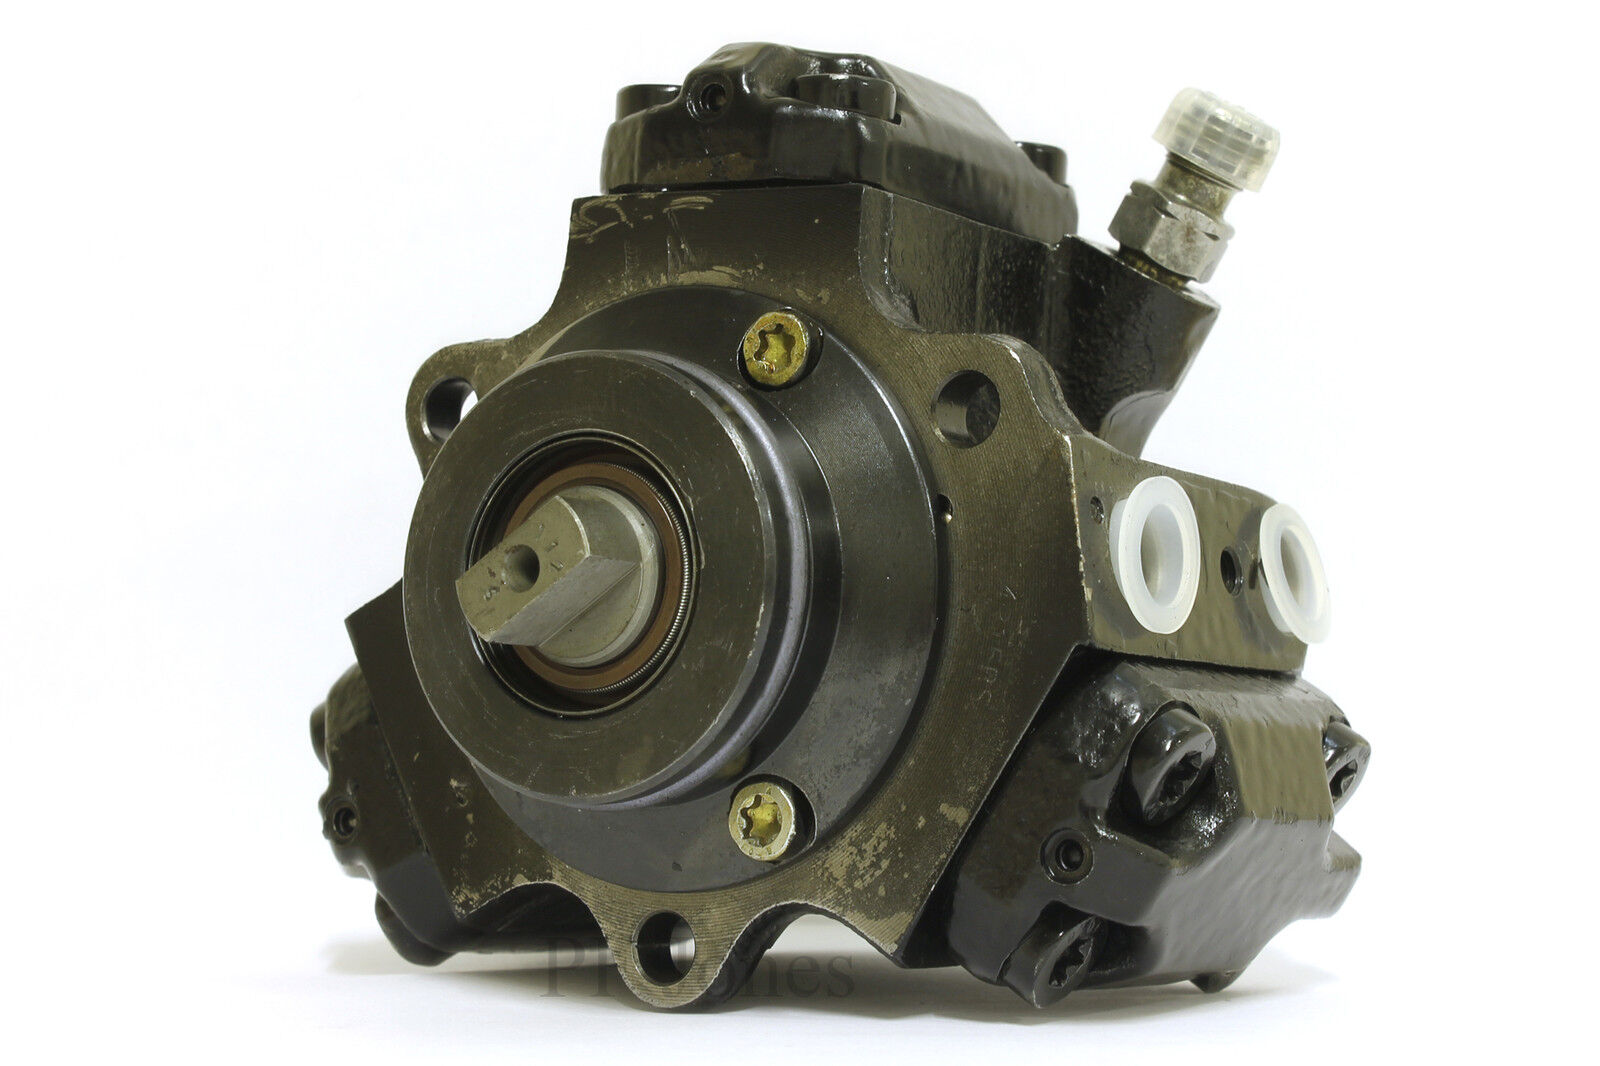 Reconditioned bosch diesel fuel pump 0445010038 60 cash back see listing